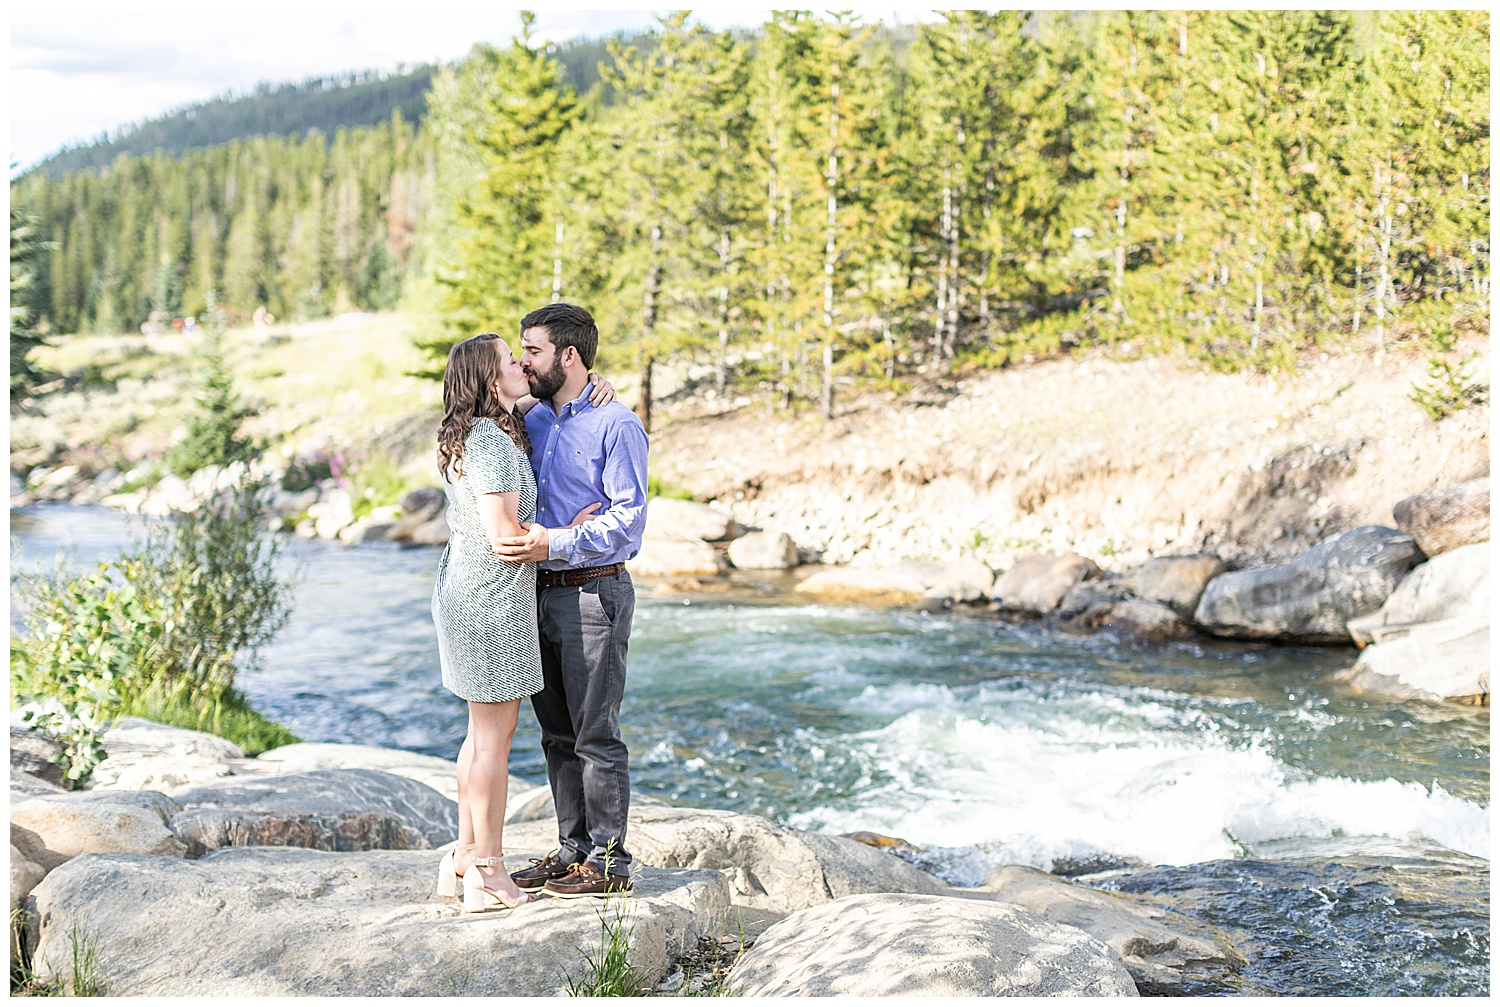 Molly + Ryan Breckenridge Destination Engagement Session Living Radiant Photography_0013.jpg